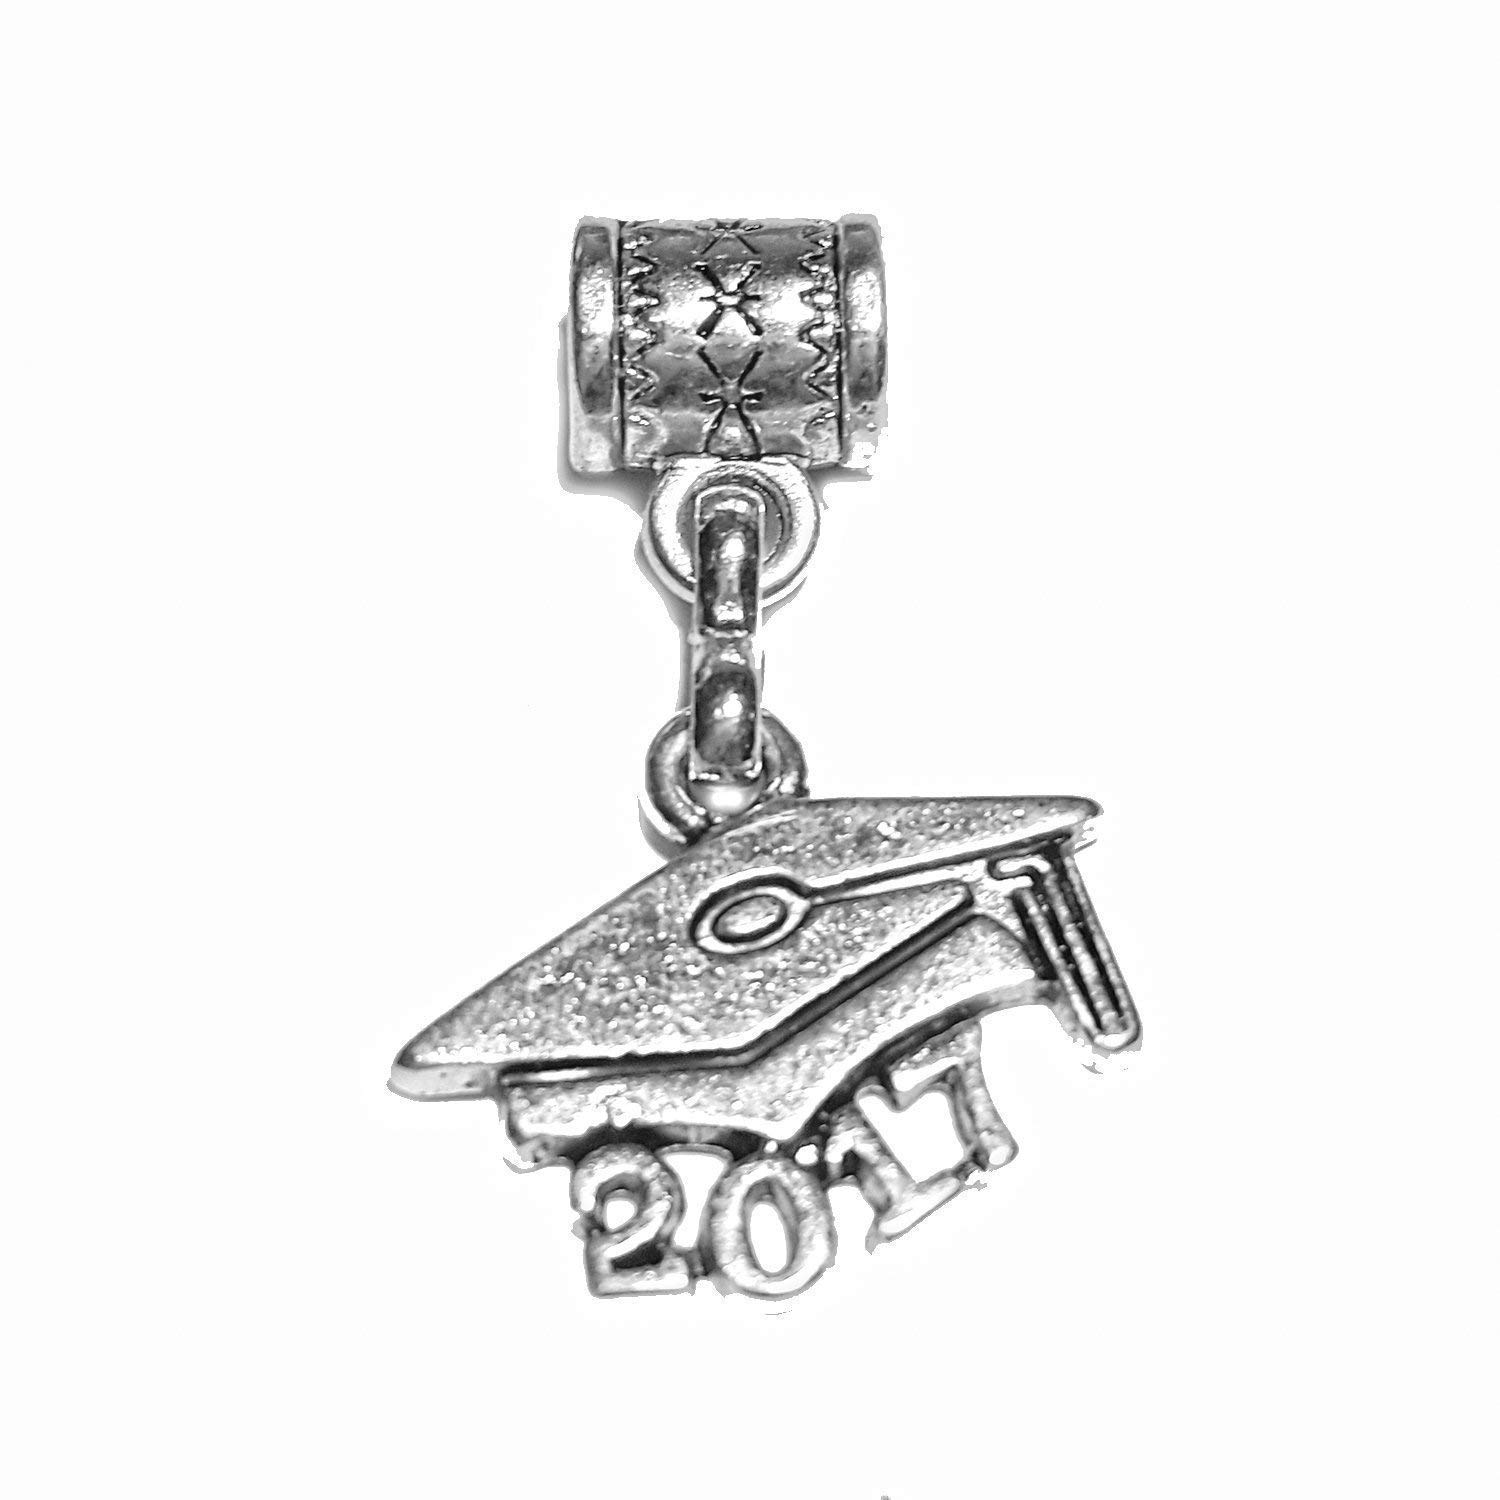 """Graduate 2017 charm"" is a Tibetan Silver Hanging charm for large hole style snake chain bracelets, or add to a neck chain, pendant necklace or key chain."